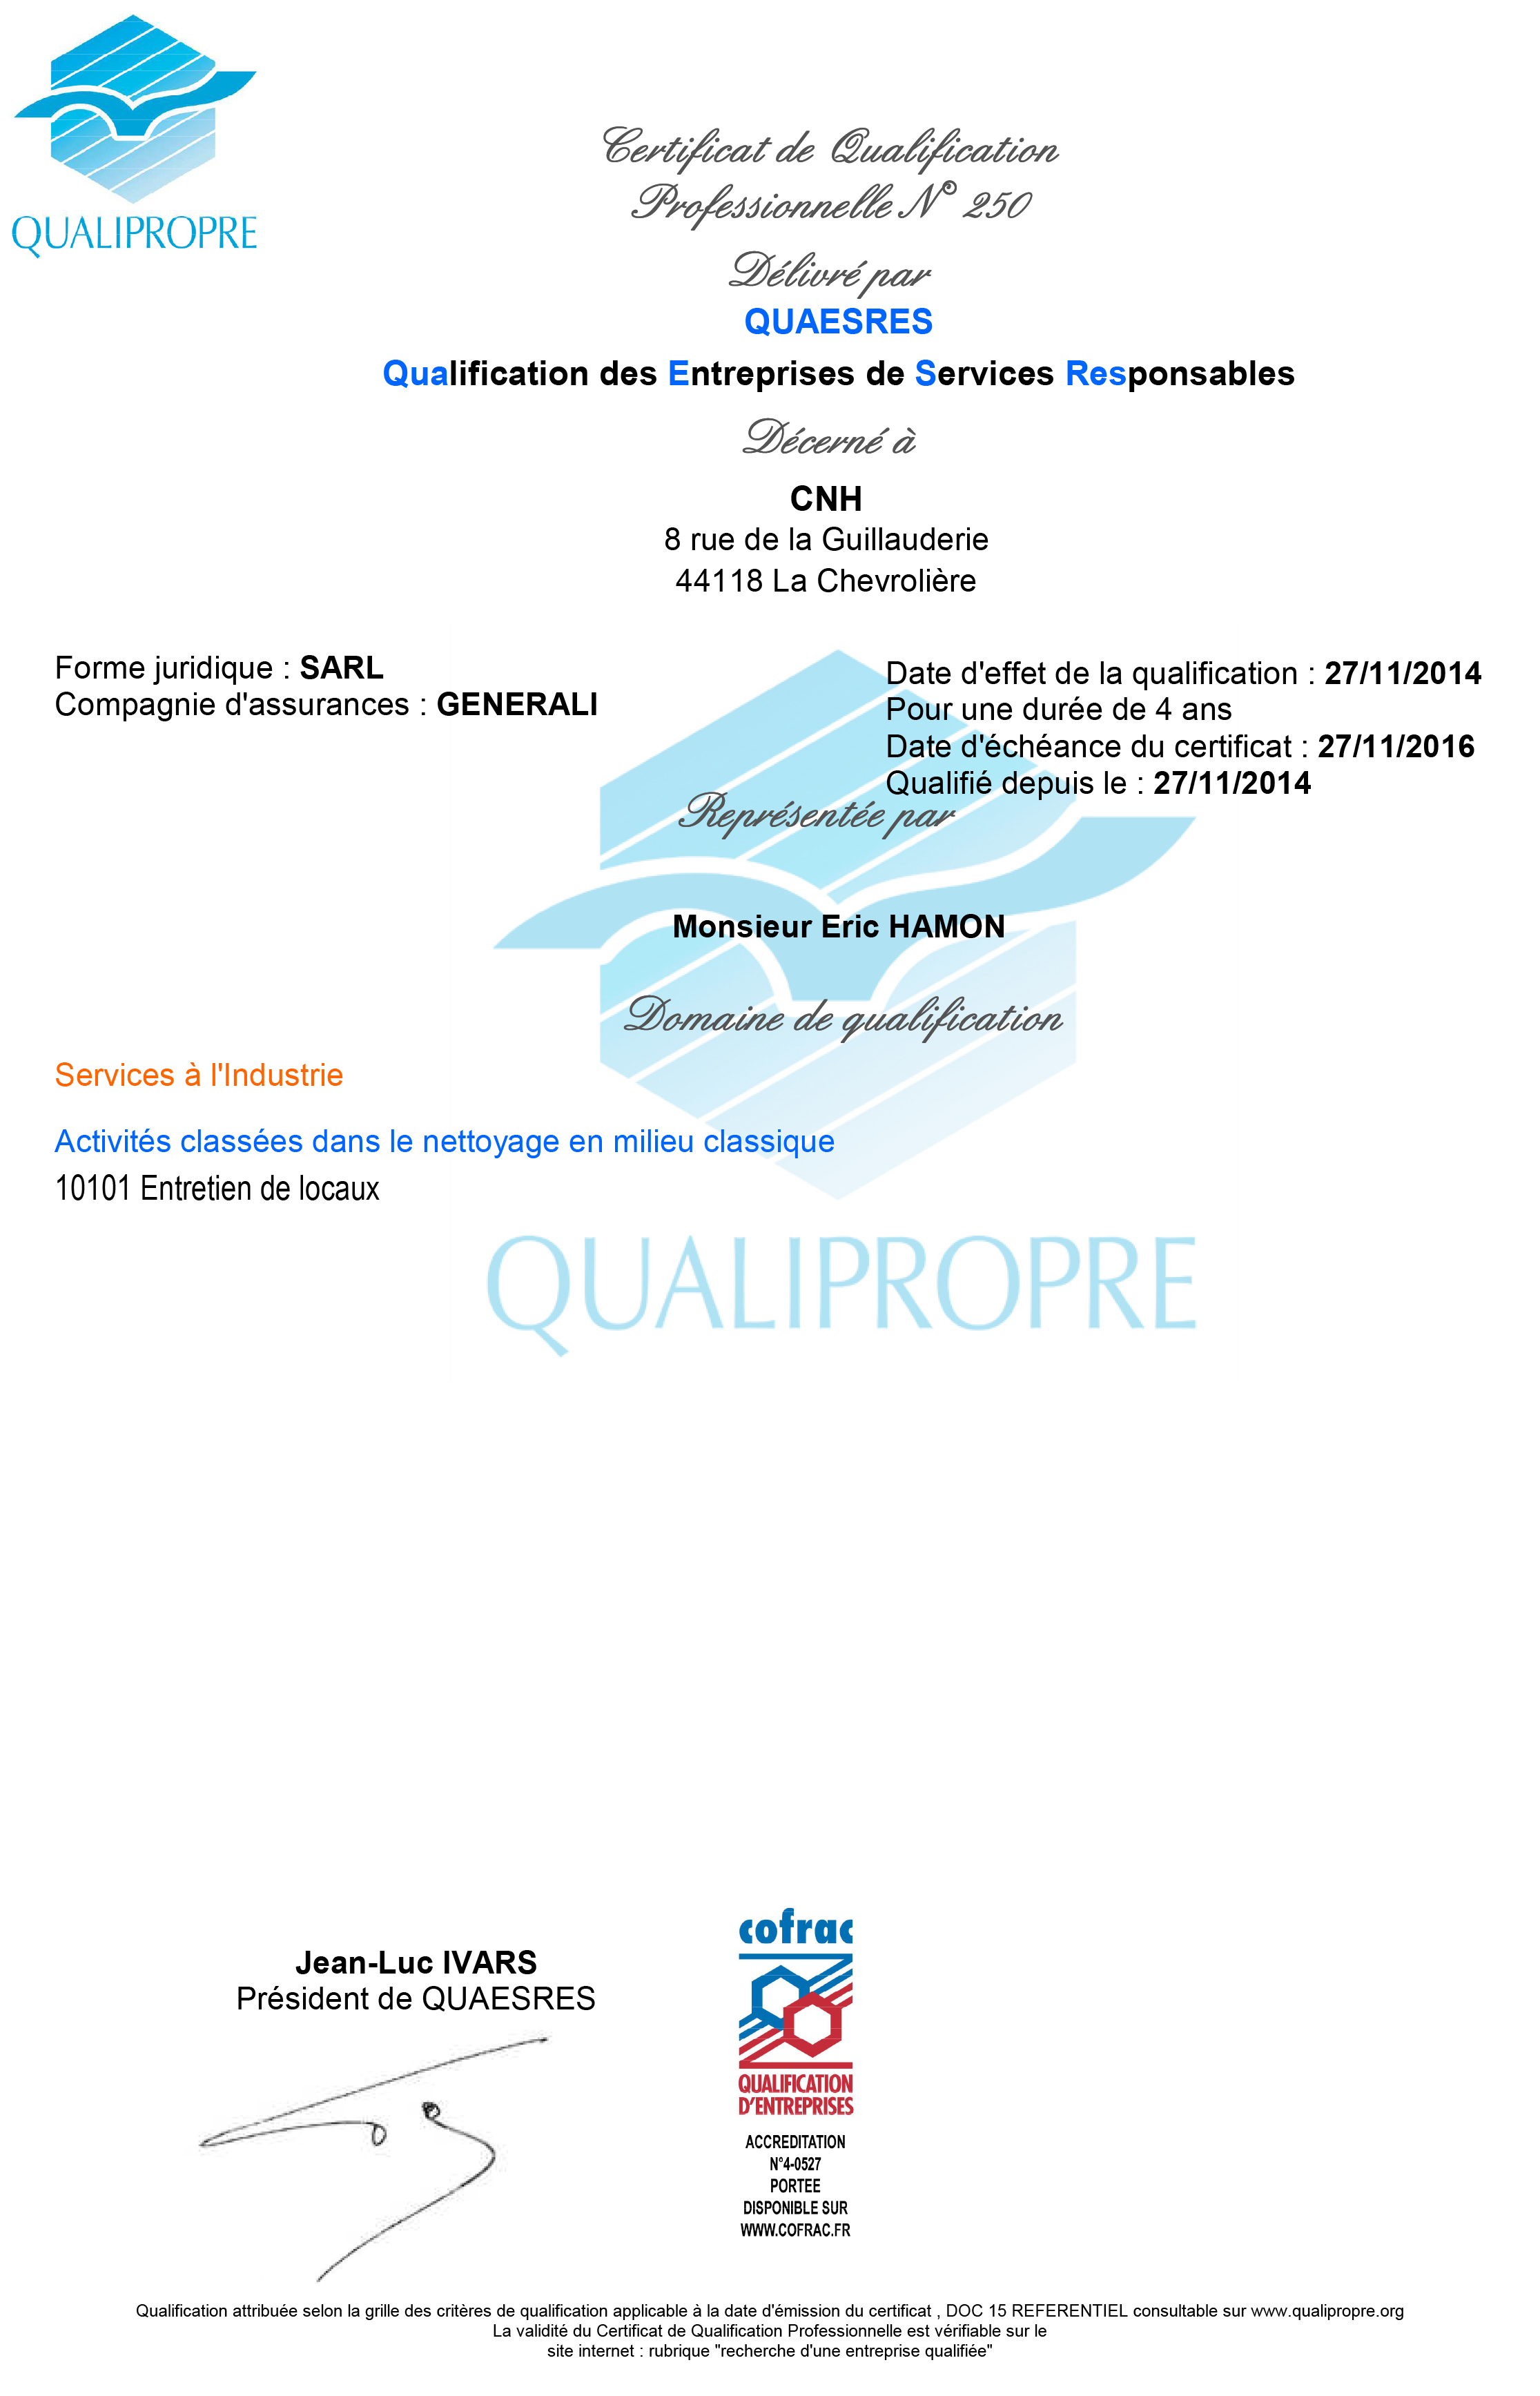 Certificat de qualification professionnelle QUALIPROPRE